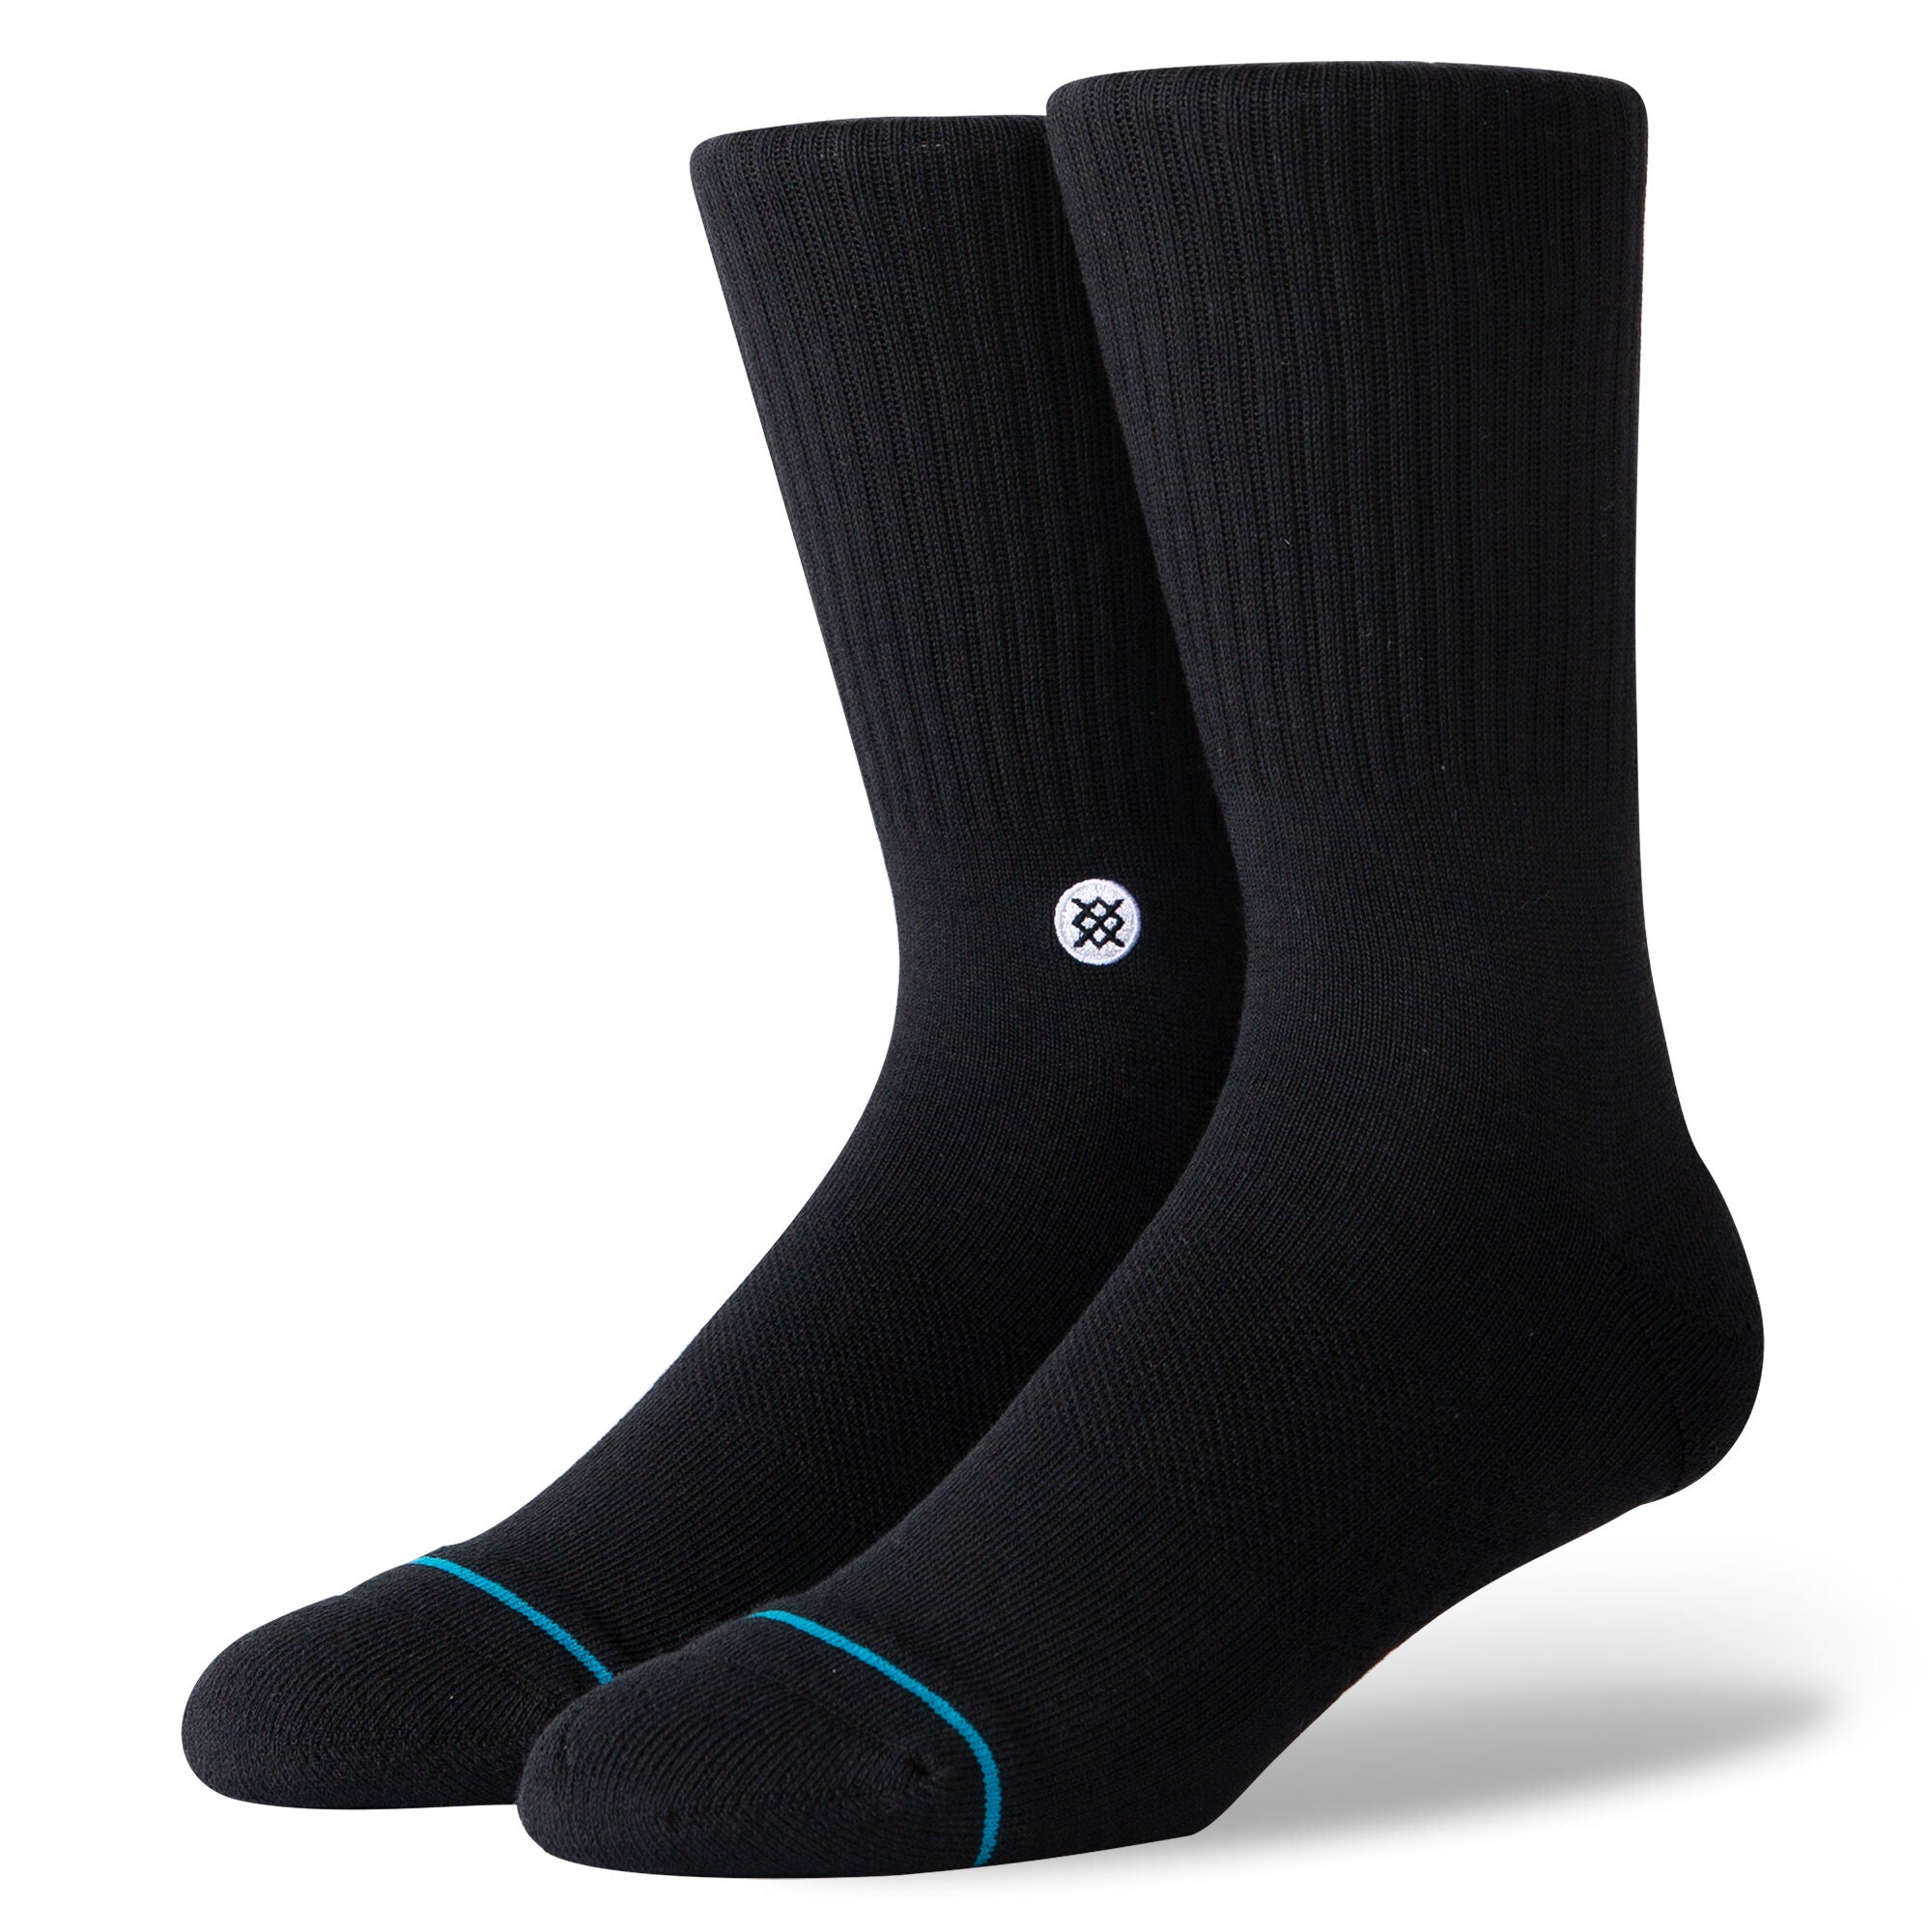 The Icon Men's Crew Socks